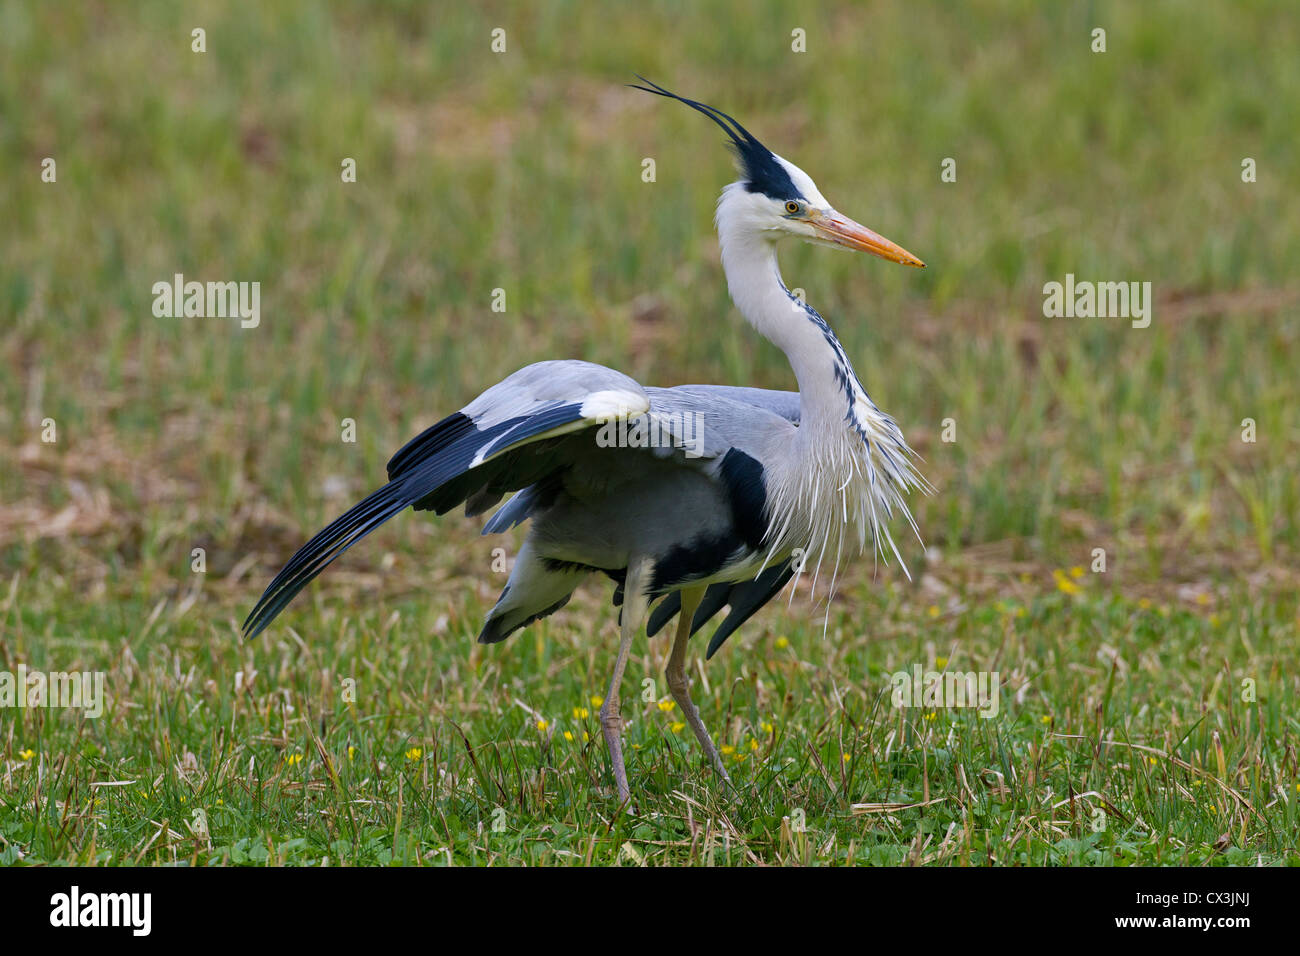 Grey Heron (Ardea cinerea) displaying by raising crest feathers in meadow, Germany Stock Photo